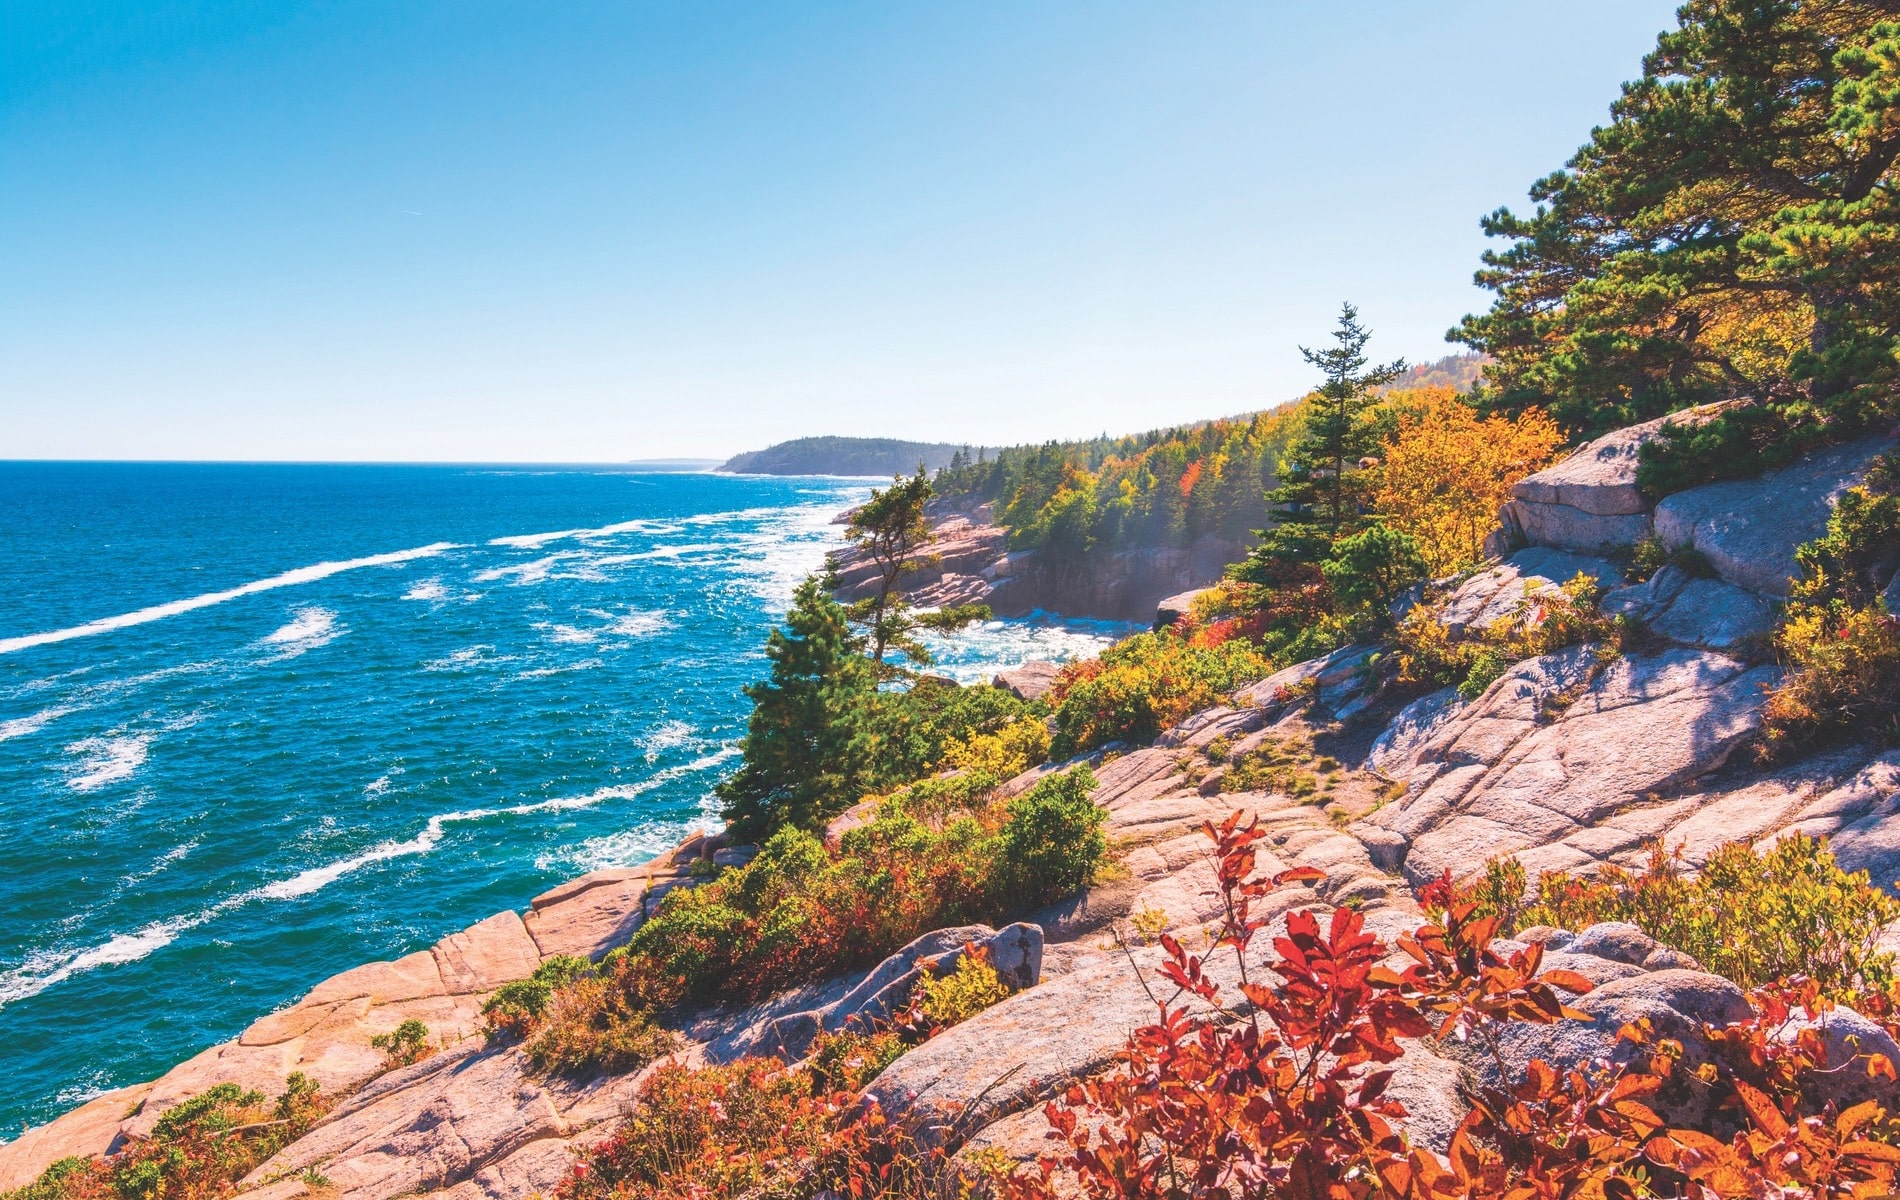 A view of Maine's rocky coastline from Acadia National Park